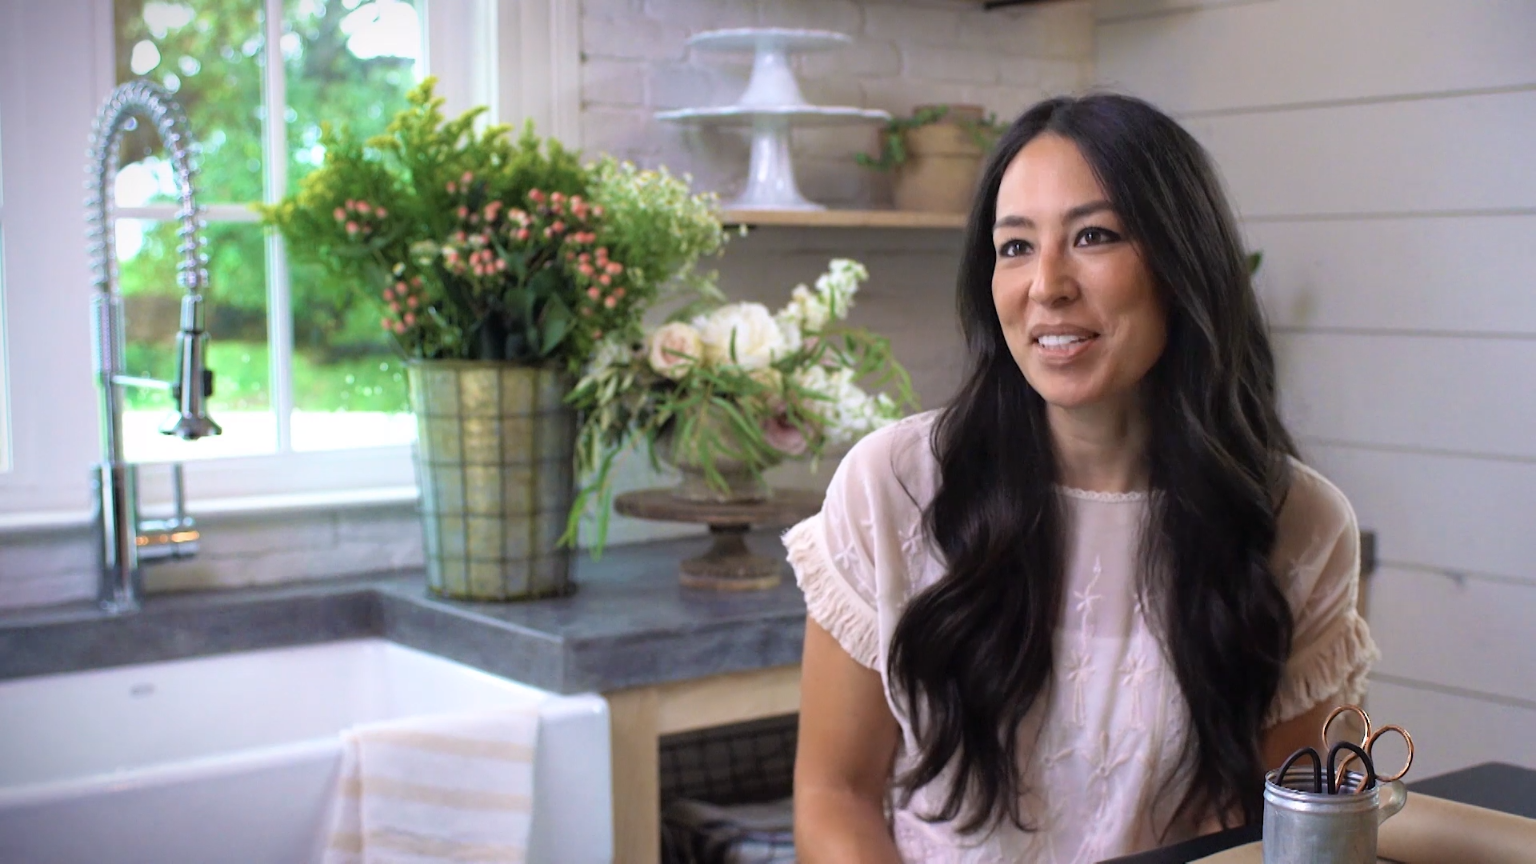 Magnolia Home by Joanna Gaines, a furniture collection designed by Joanna Gaines.  Find sofas, bedrooms & more made to be family-friendly and comfortably livable - Joanna's authenticity shines through in every detail. #magnoliahomesjoannagaines